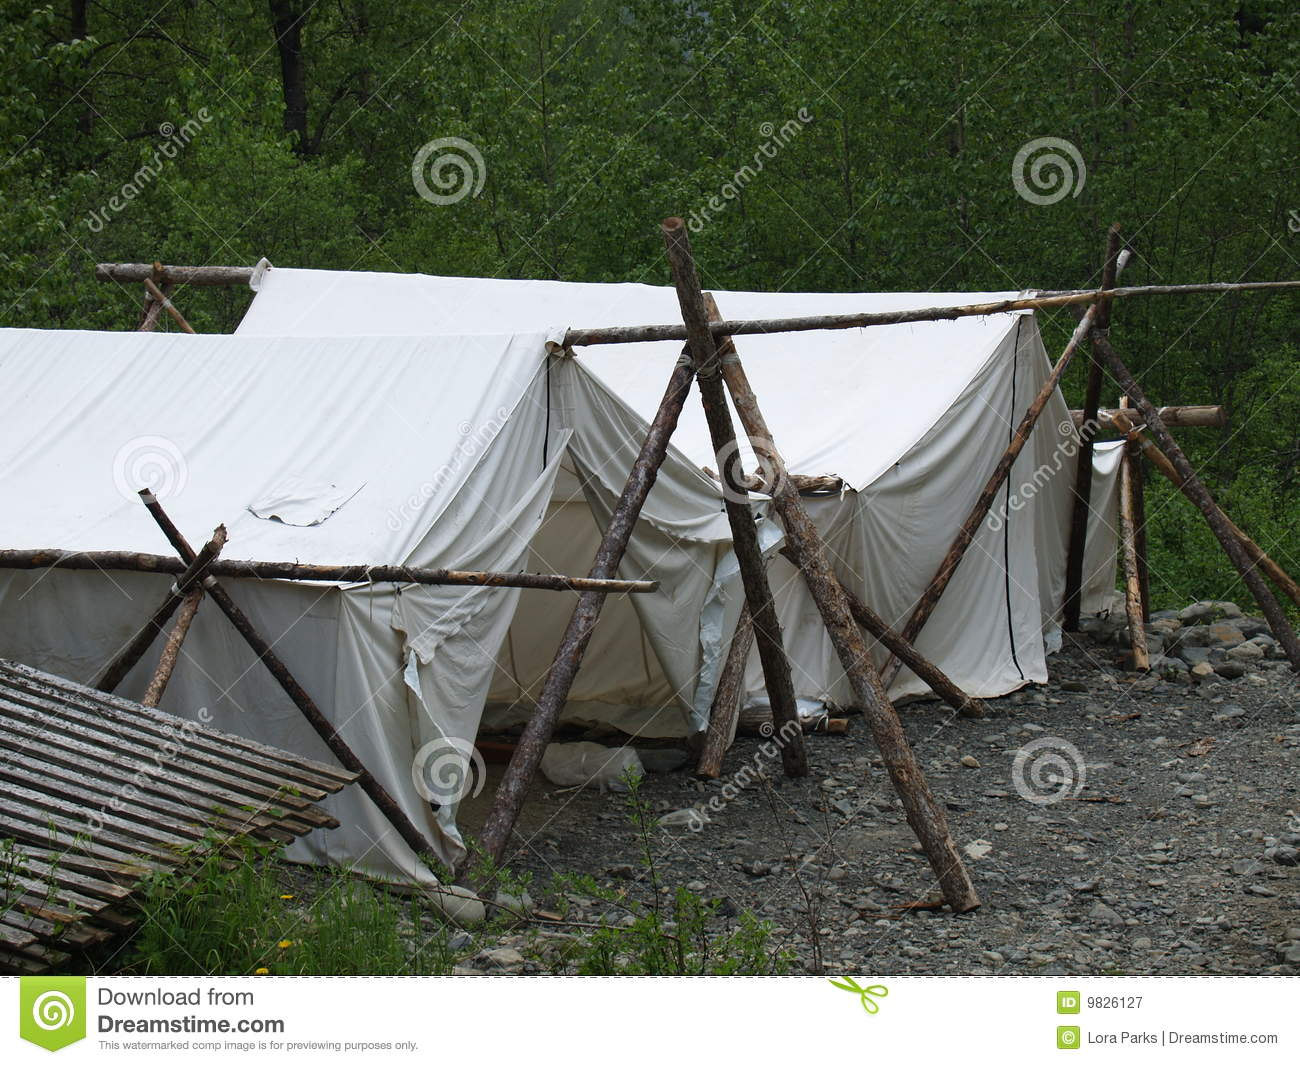 Old-Fashioned Tents & Old-Fashioned Tents stock image. Image of makeshift location - 9826127